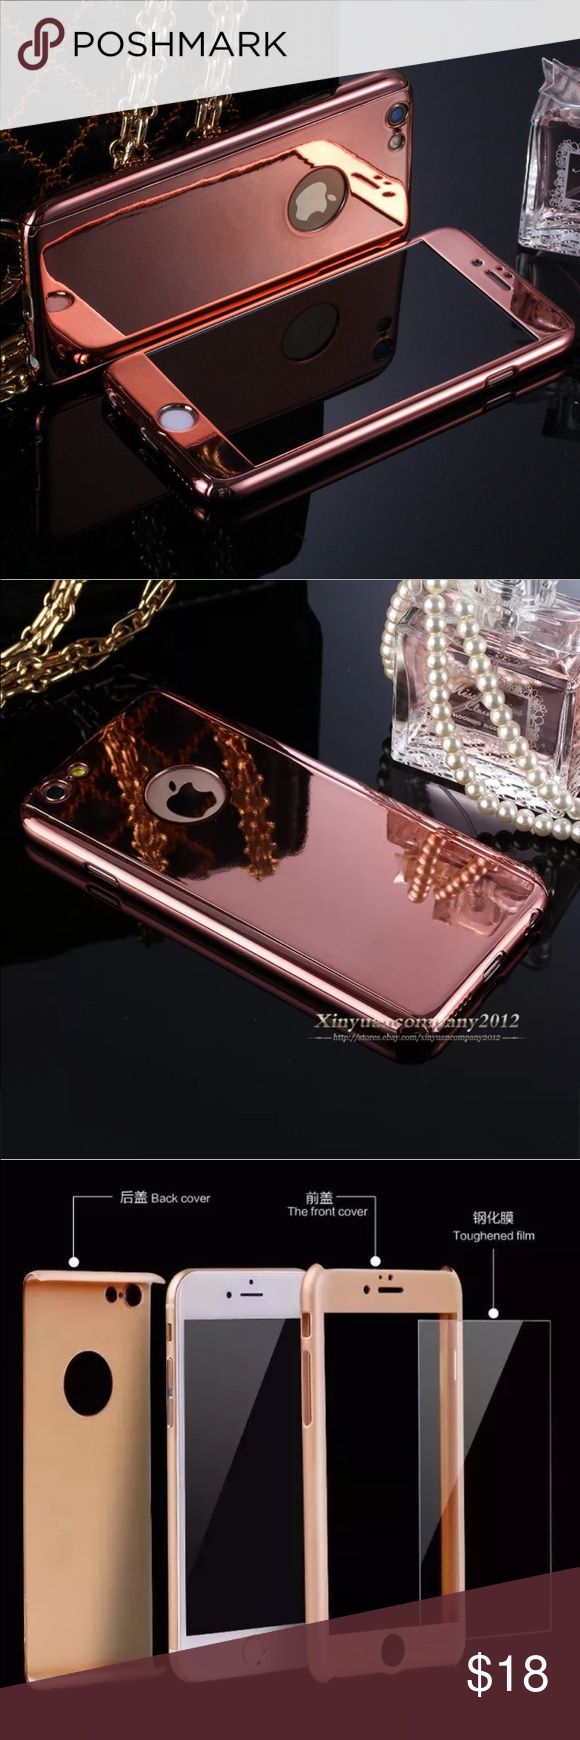 "iPhone 6/6s/7 plus/5.5"" rose gold mirror case Full protection hard acrylic case. Tempered glass screen protector included. Price is firm. Accessories Phone Cases"